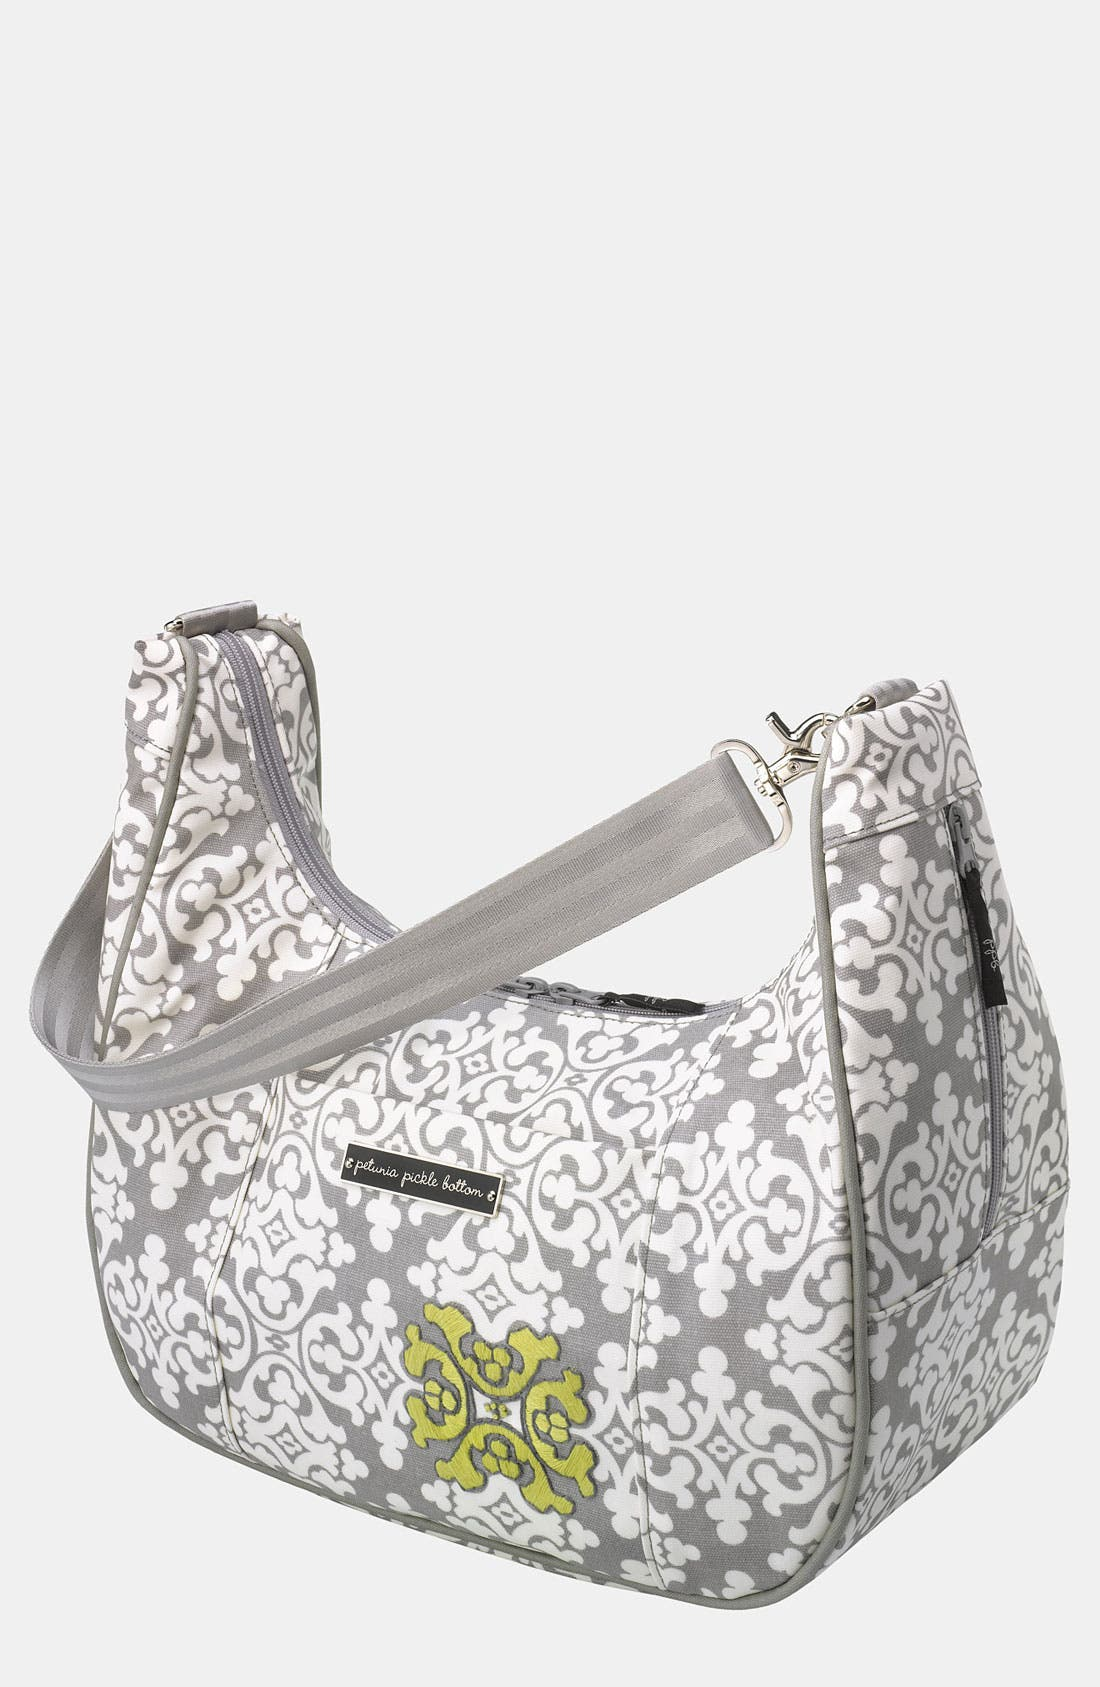 Alternate Image 1 Selected - Petunia Pickle Bottom 'Touring Tote' Chenille Diaper Bag